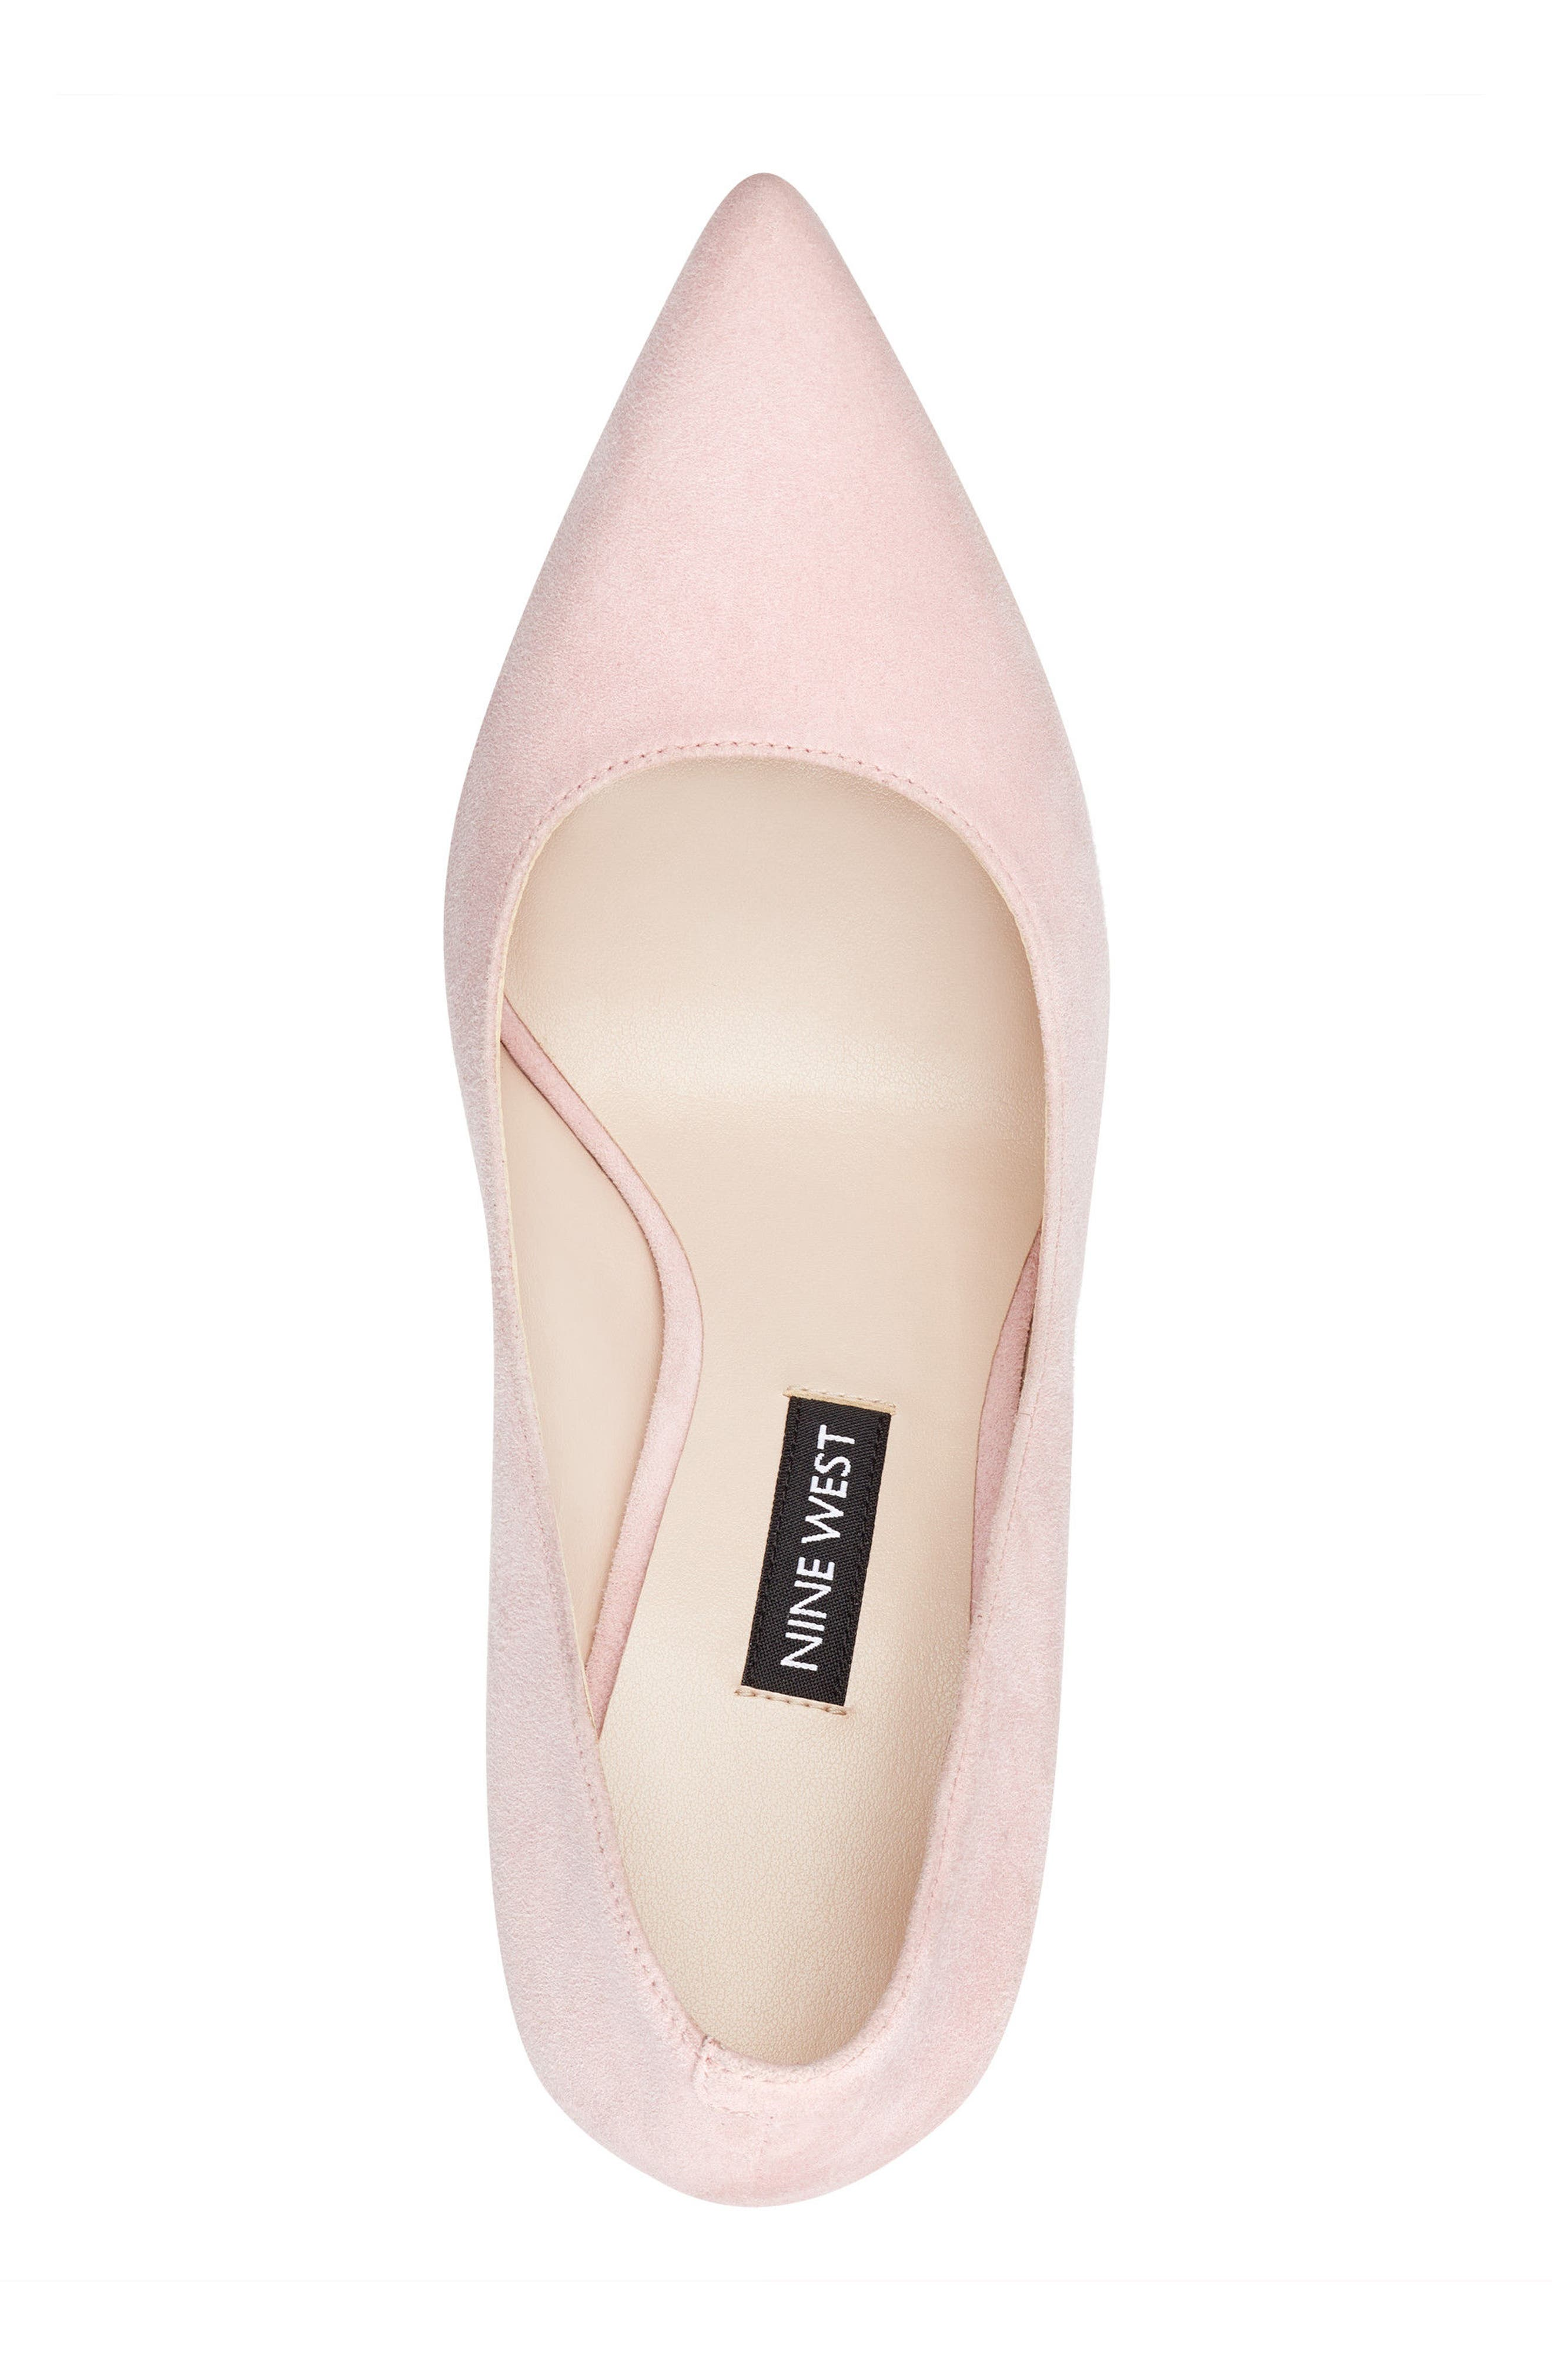 'Tatiana' Pointy Toe Pump,                             Alternate thumbnail 5, color,                             LIGHT PINK SUEDE